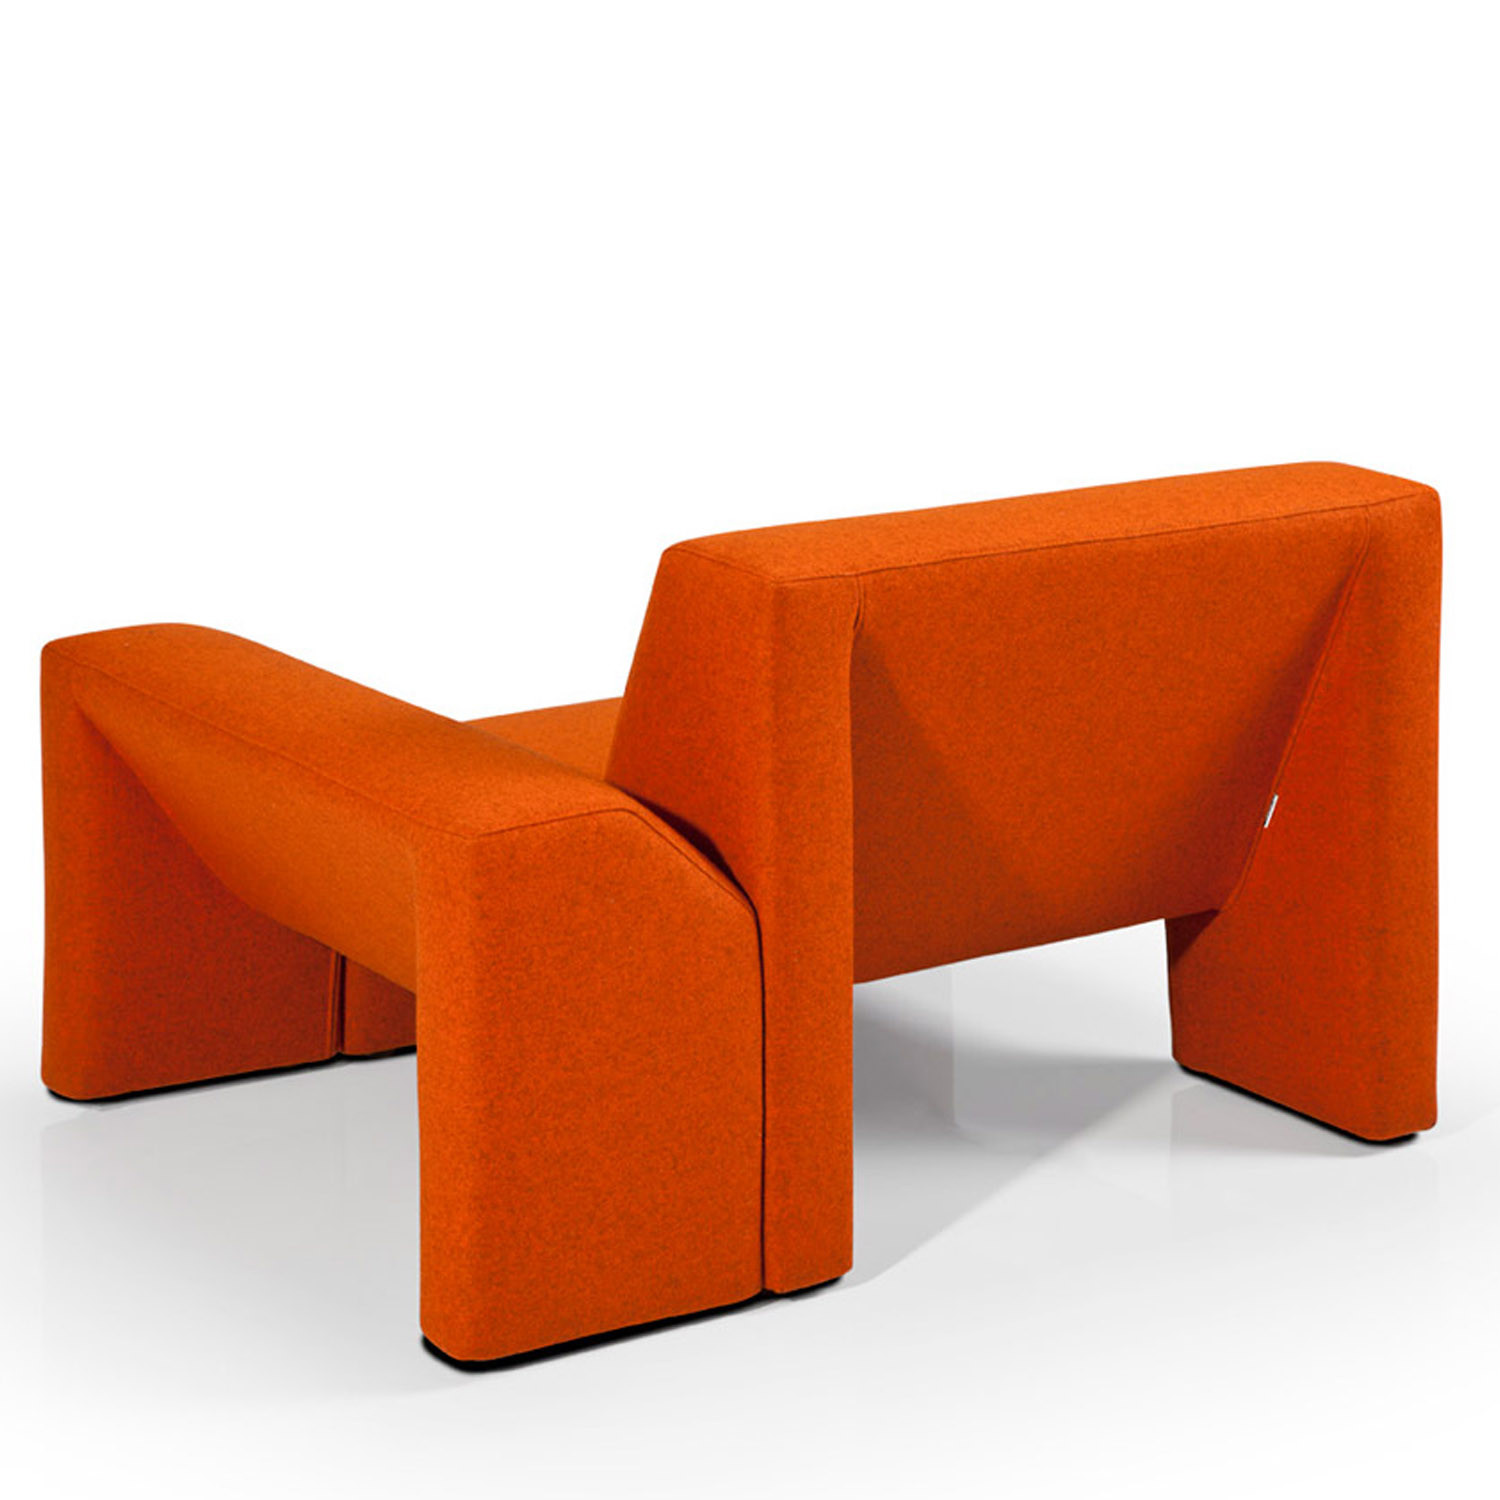 Sambia Modular Soft Seating